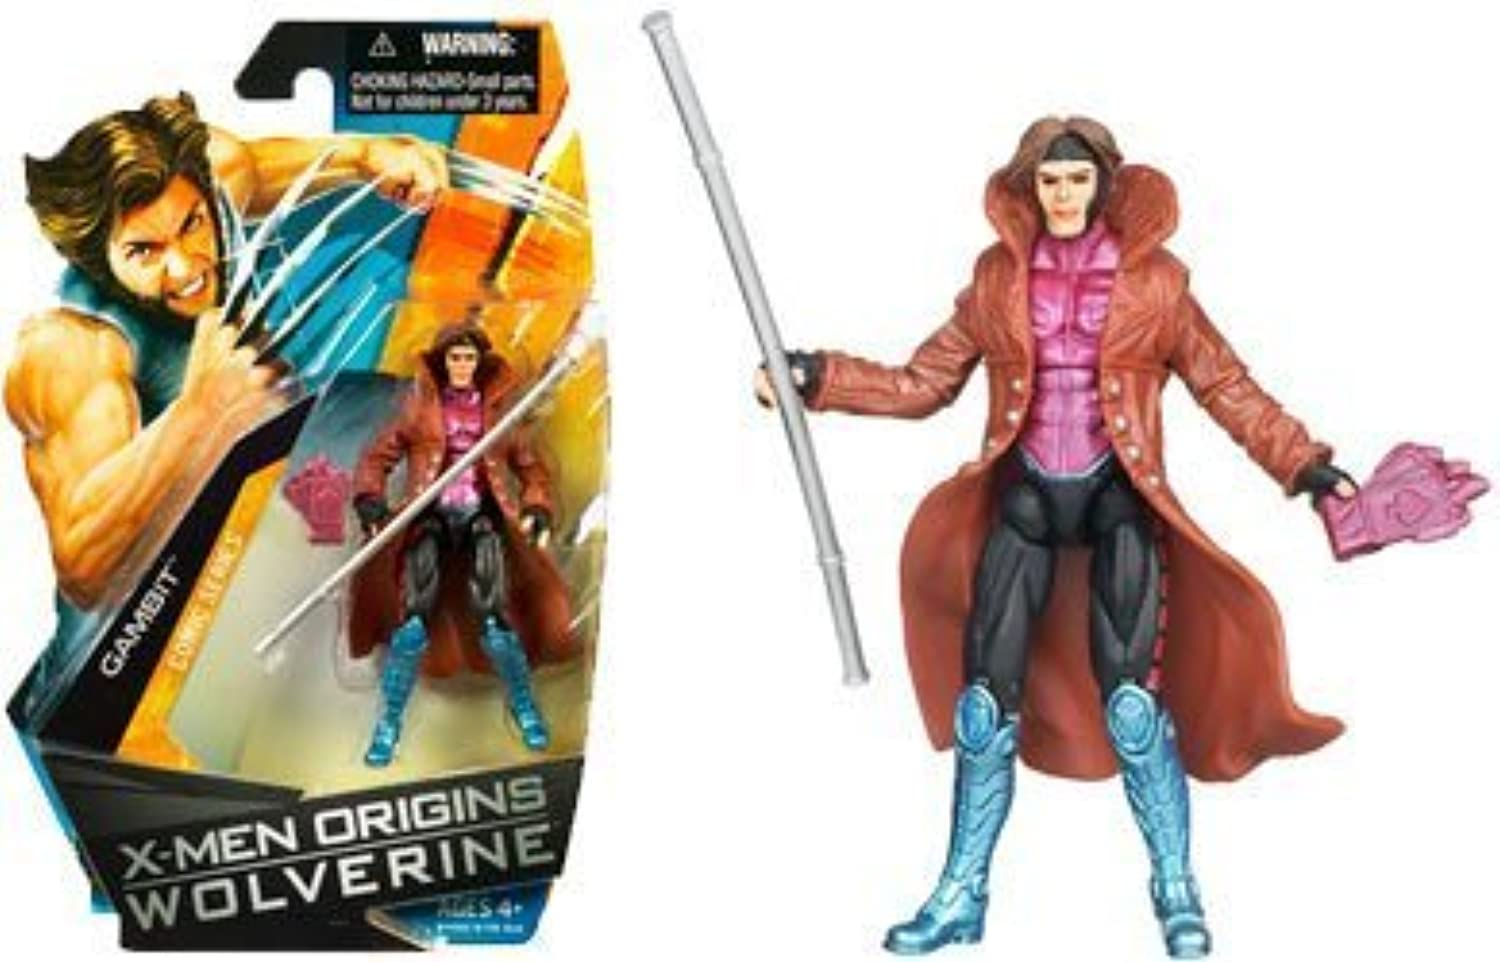 XMen Origins Wolverine Comic Series 3 3 4 Inch Action Figure Gambit by Wolverine